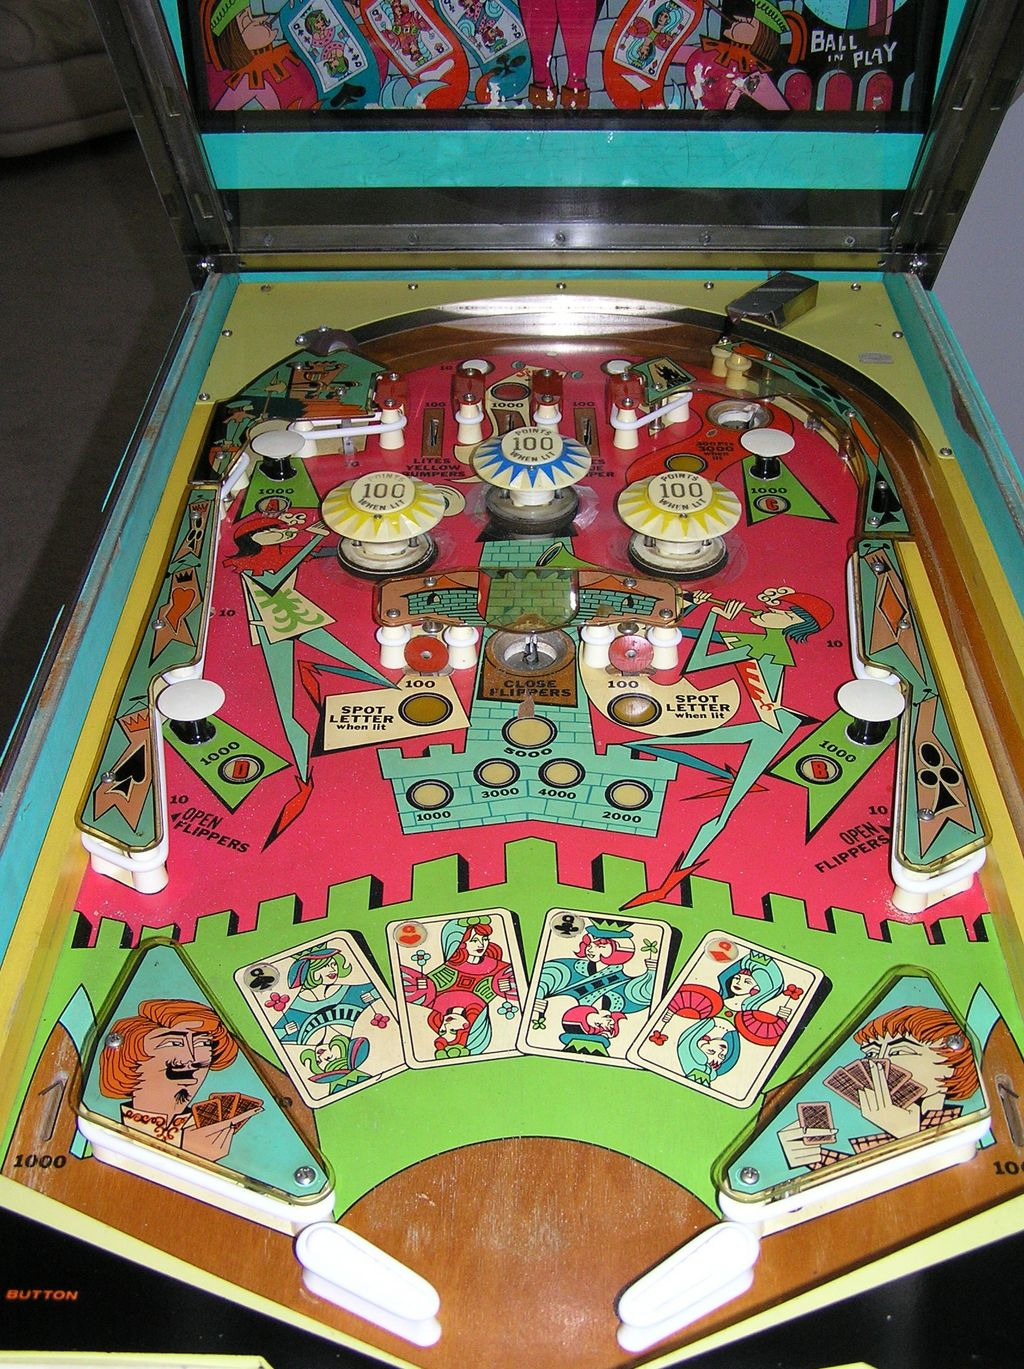 super popular later limited guantity Bally 4 Queens pinball machine 1970 USA coin operated arcade ...